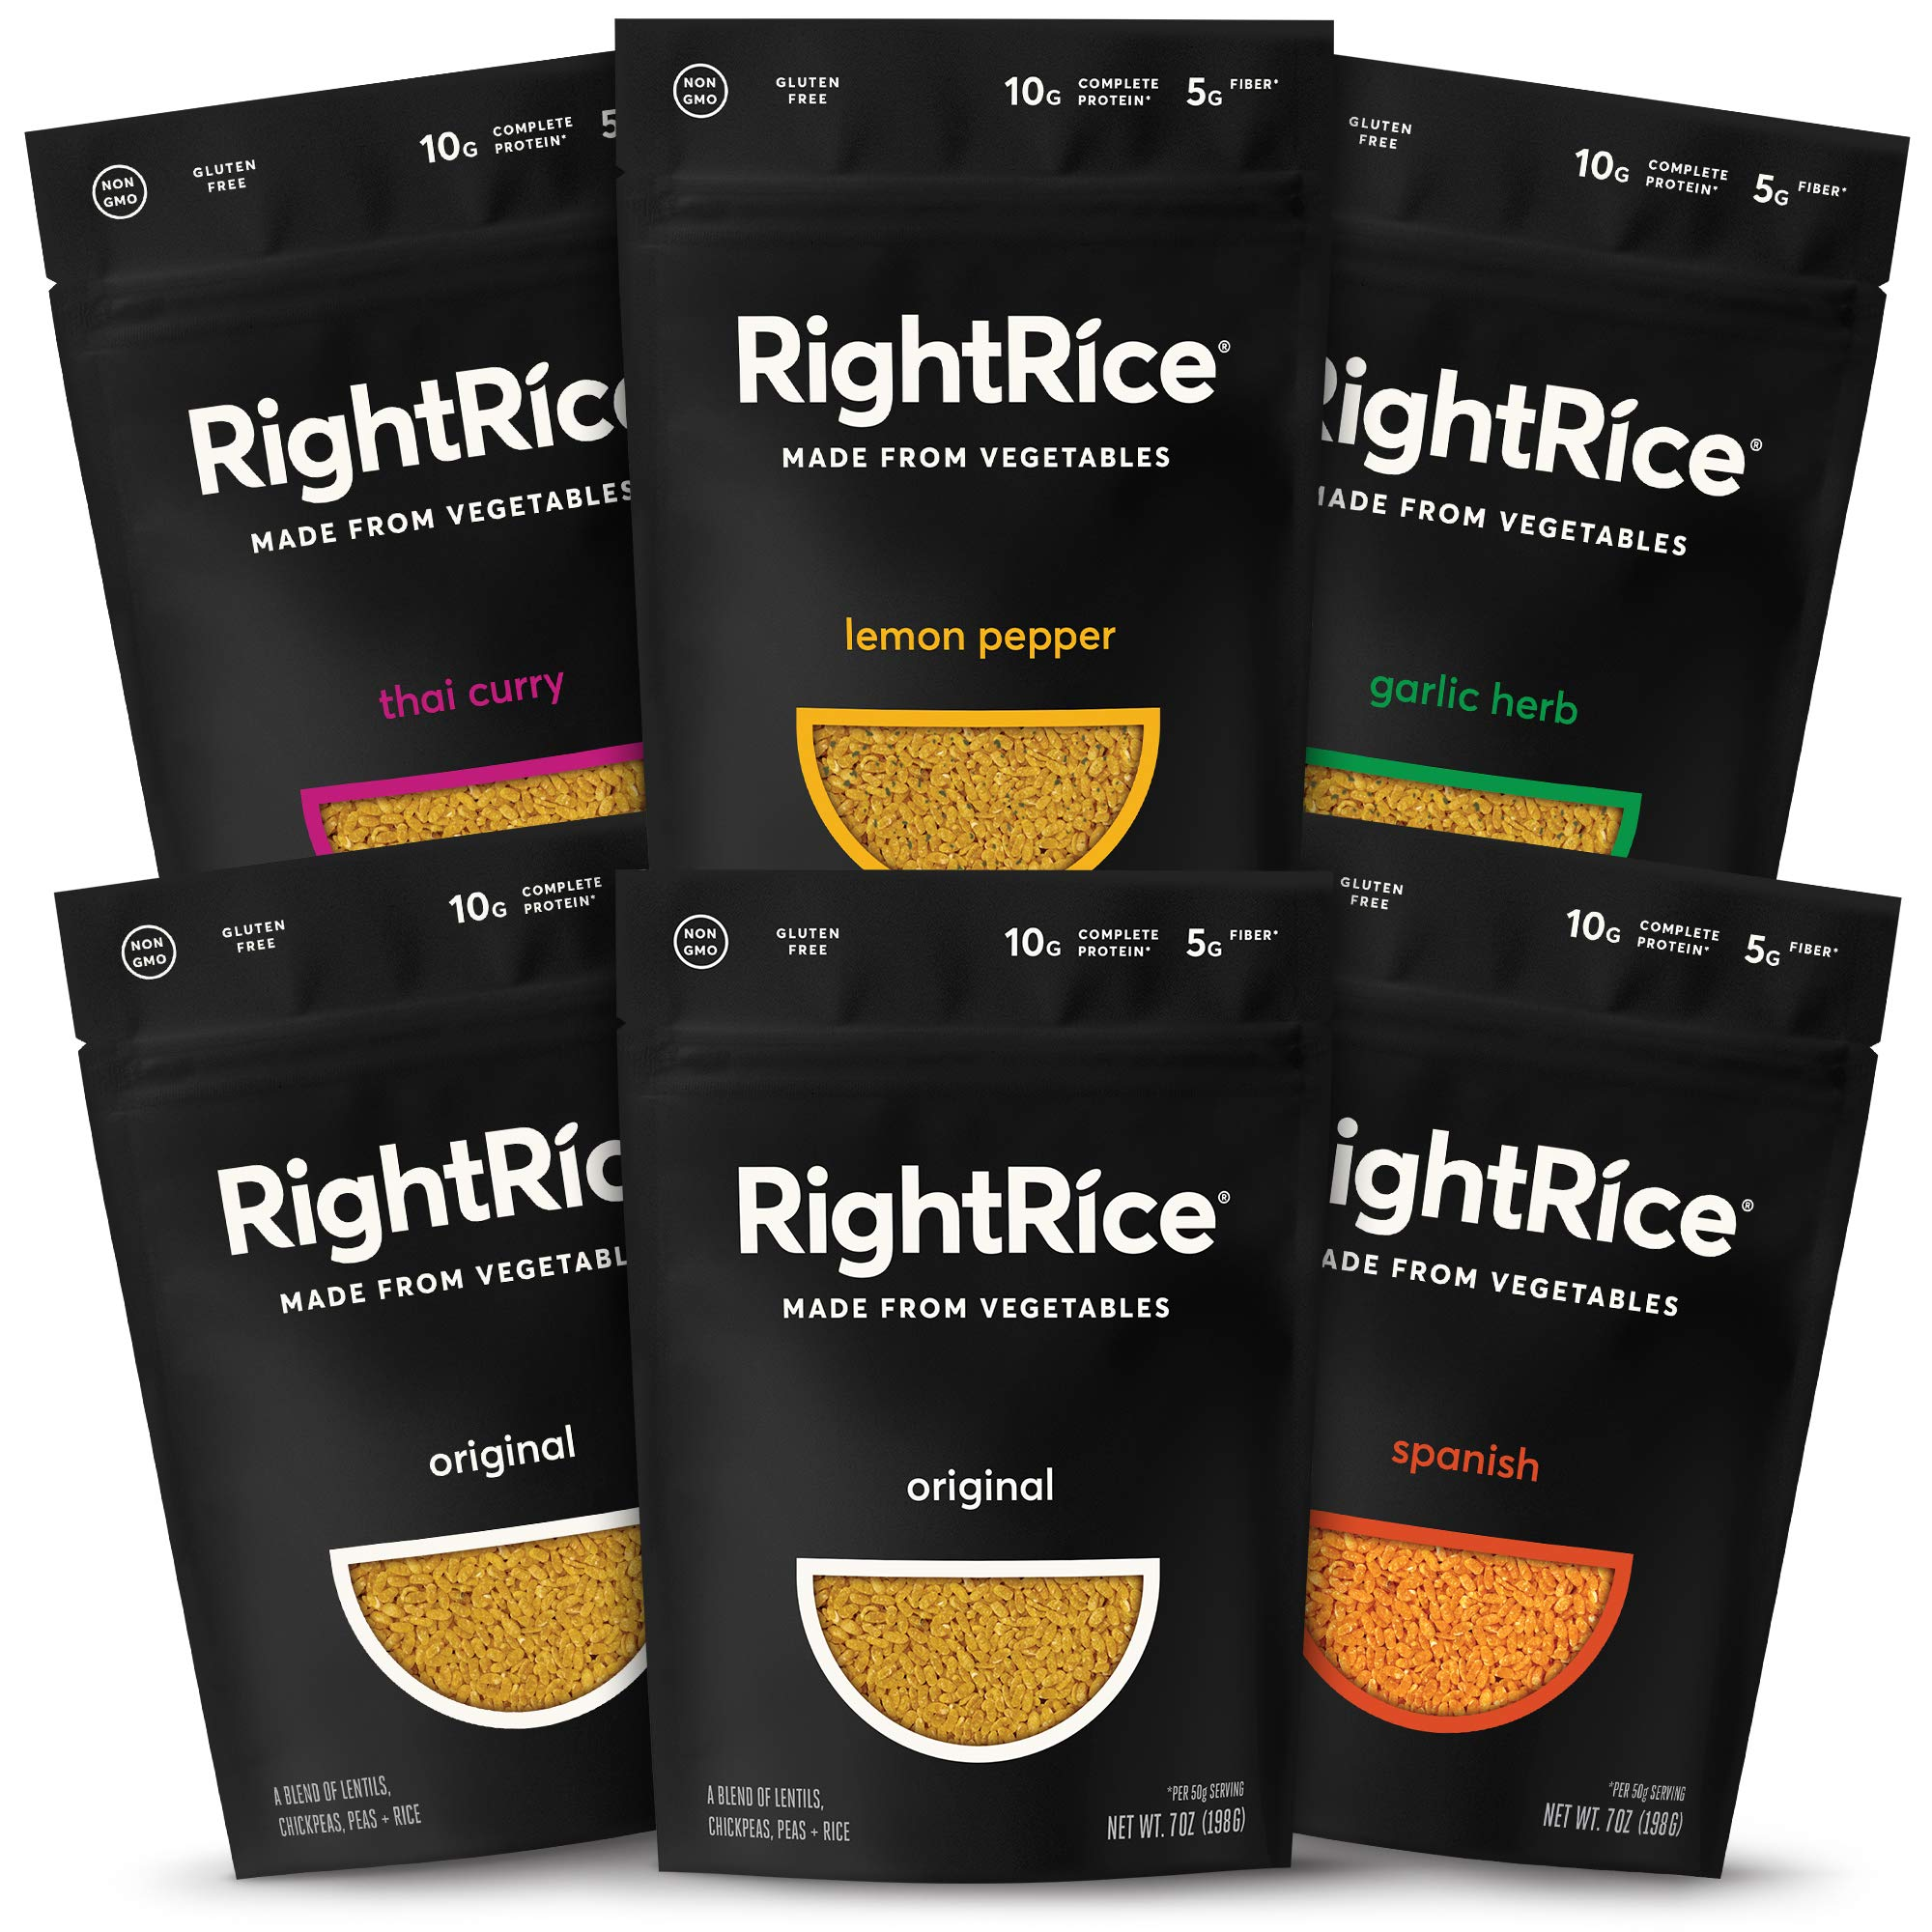 RightRice - Variety Pack (7oz. Pack of 6) - Made from Vegetables - High Protein, Vegan, non GMO, Gluten Free by RightRice